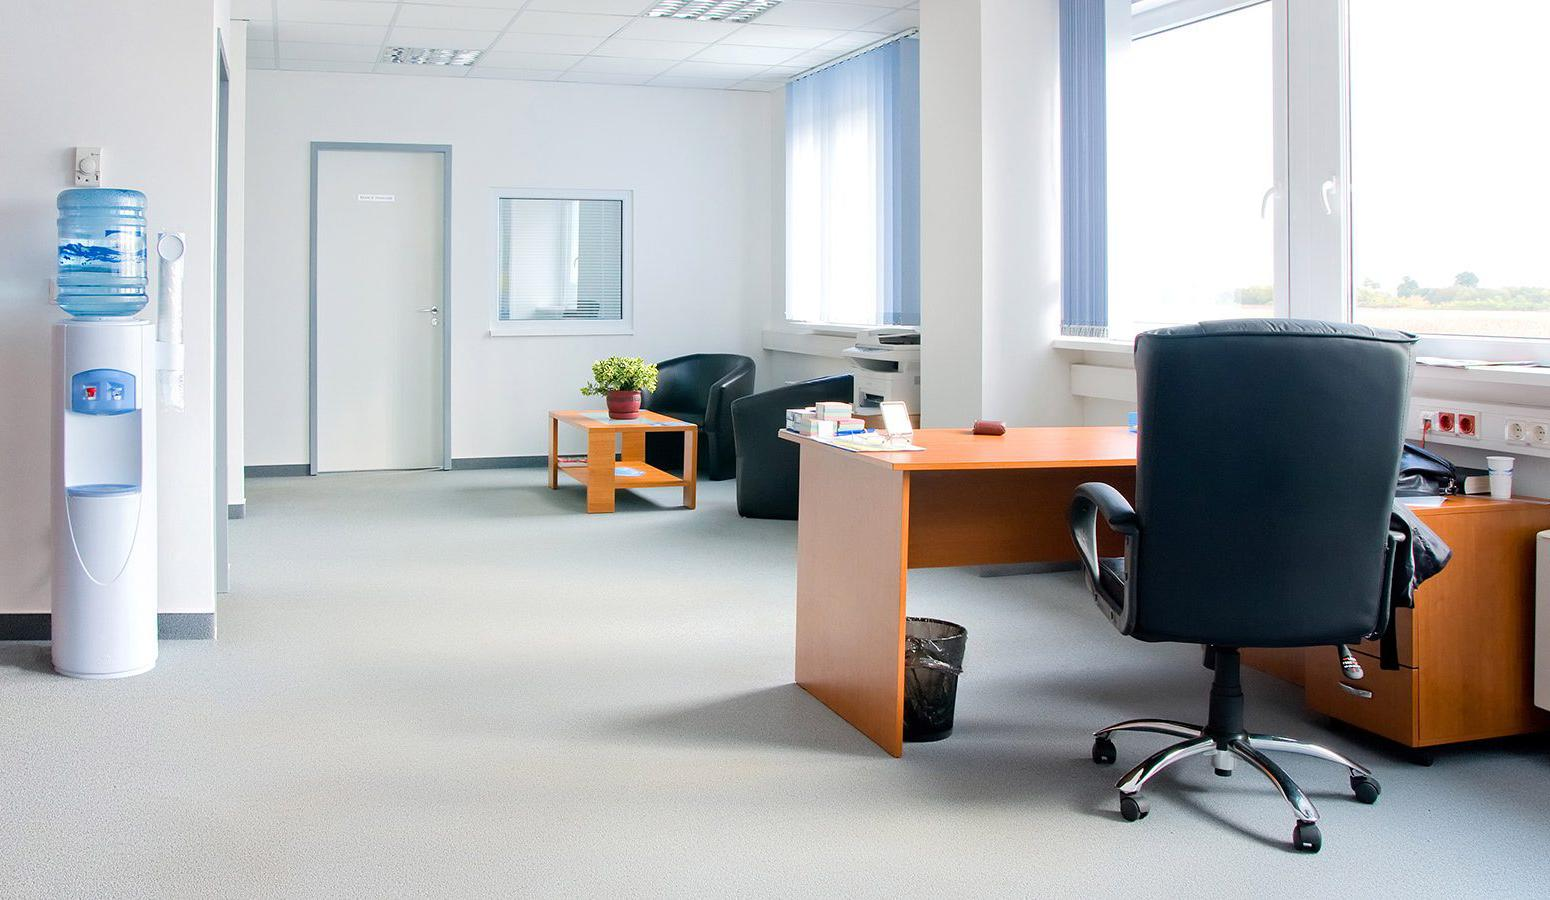 Office Cleaning Services in Ahwatukee